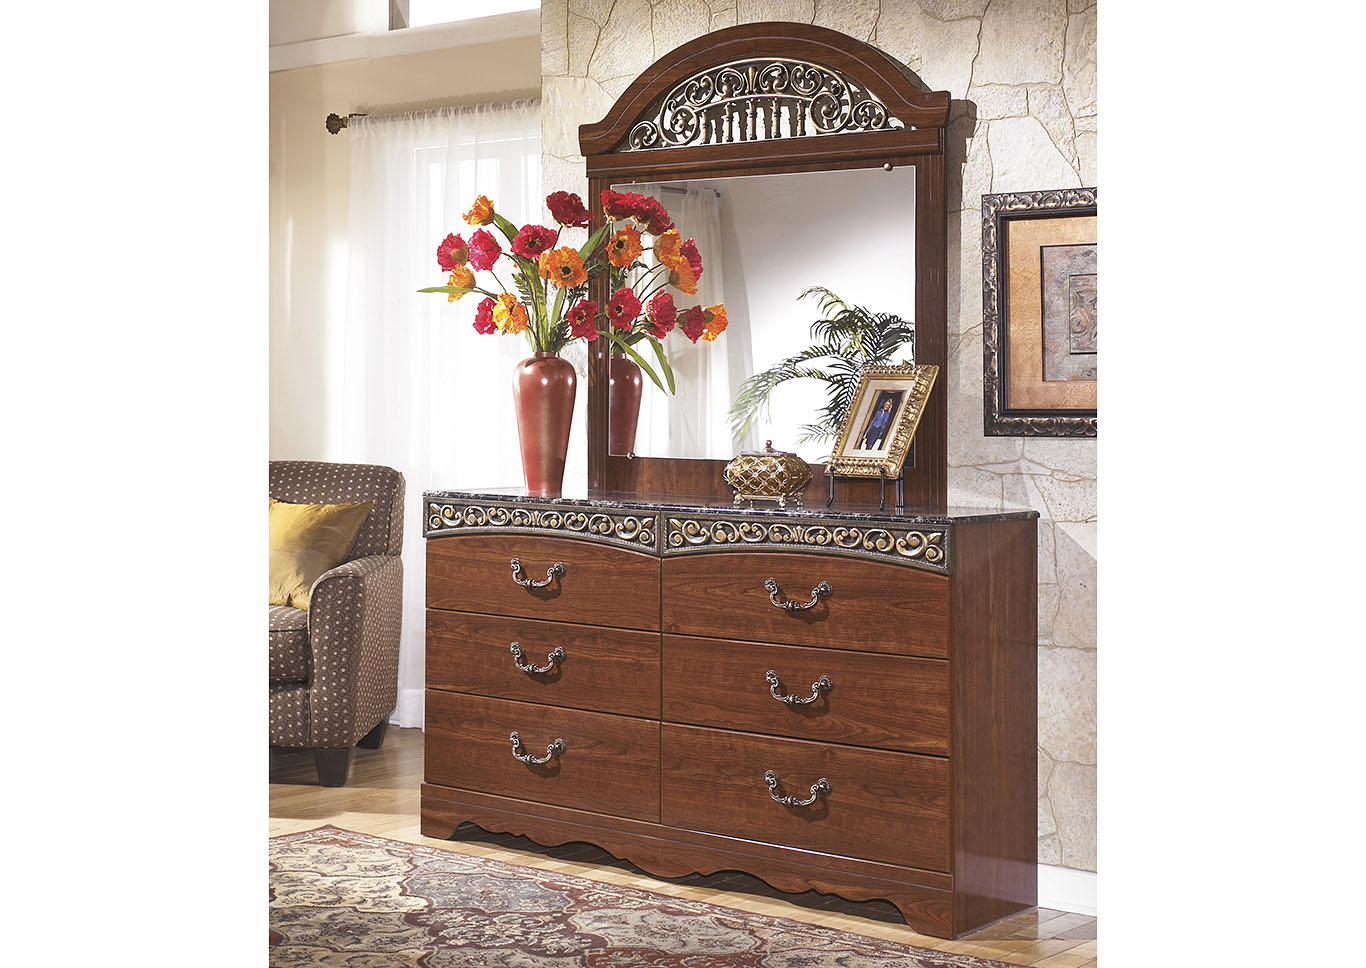 Fairbrooks Estate Dresser,ABF Signature Design by Ashley